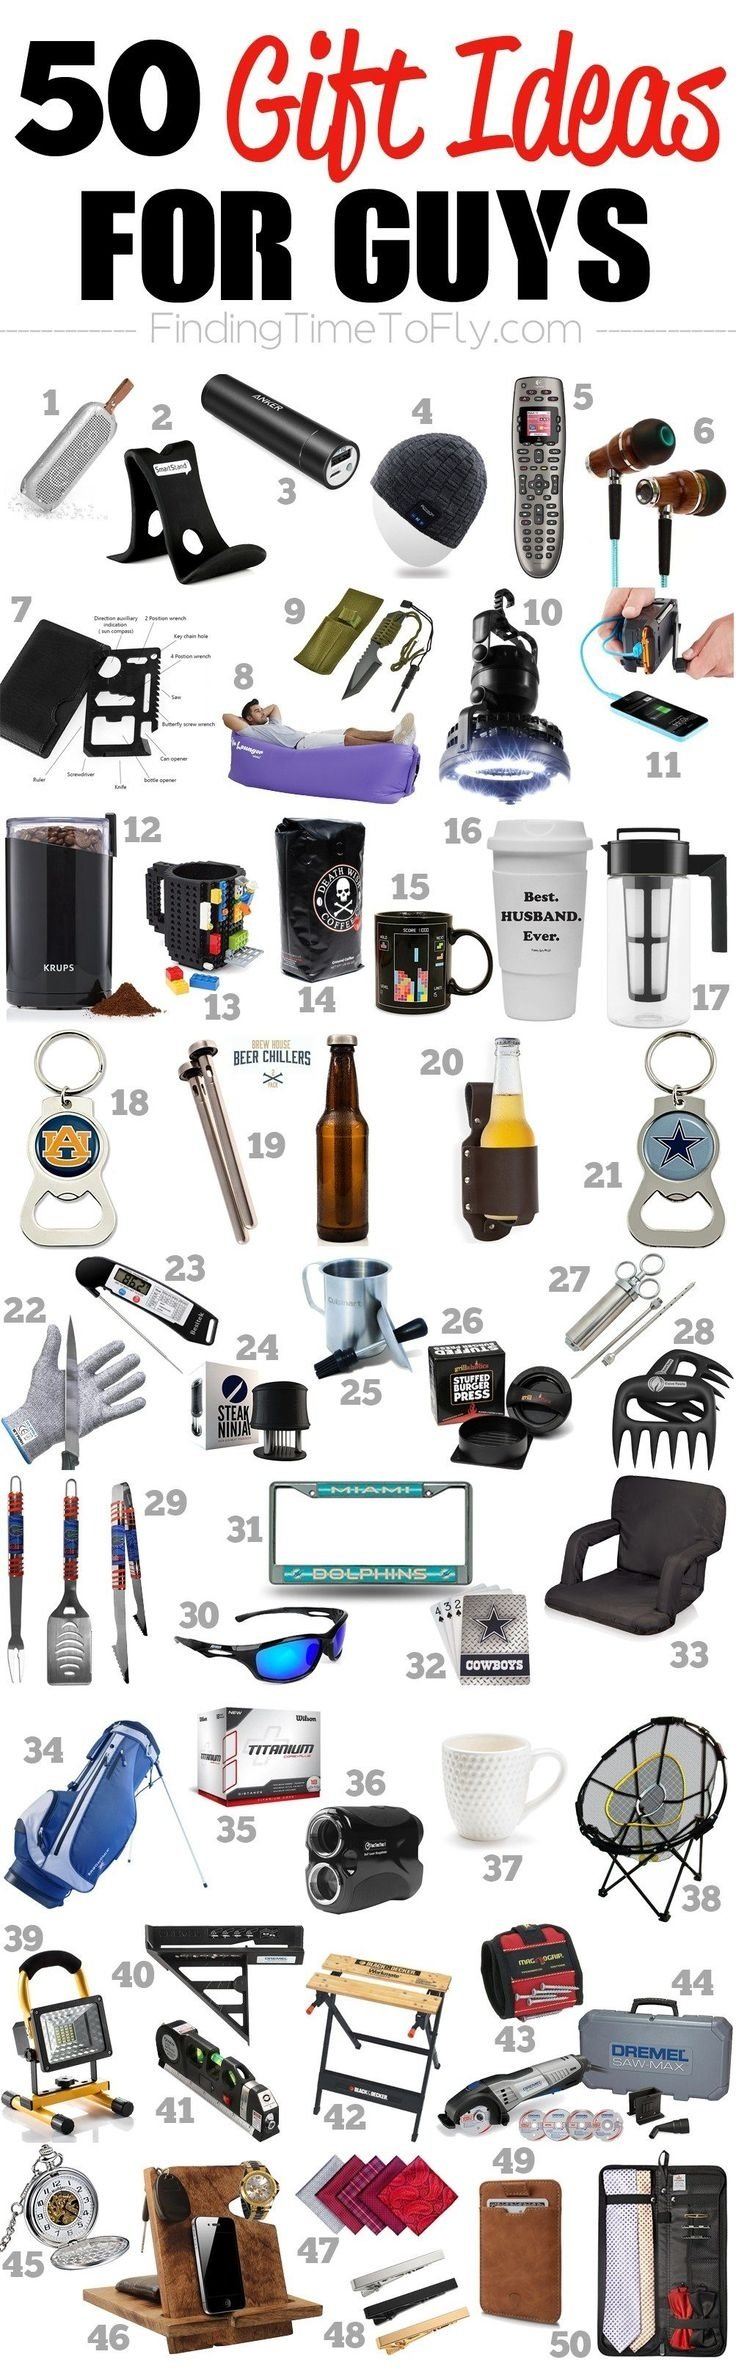 10 Stunning Gift Ideas For College Guys 393 best college student gift ideas images on pinterest college 1 2020